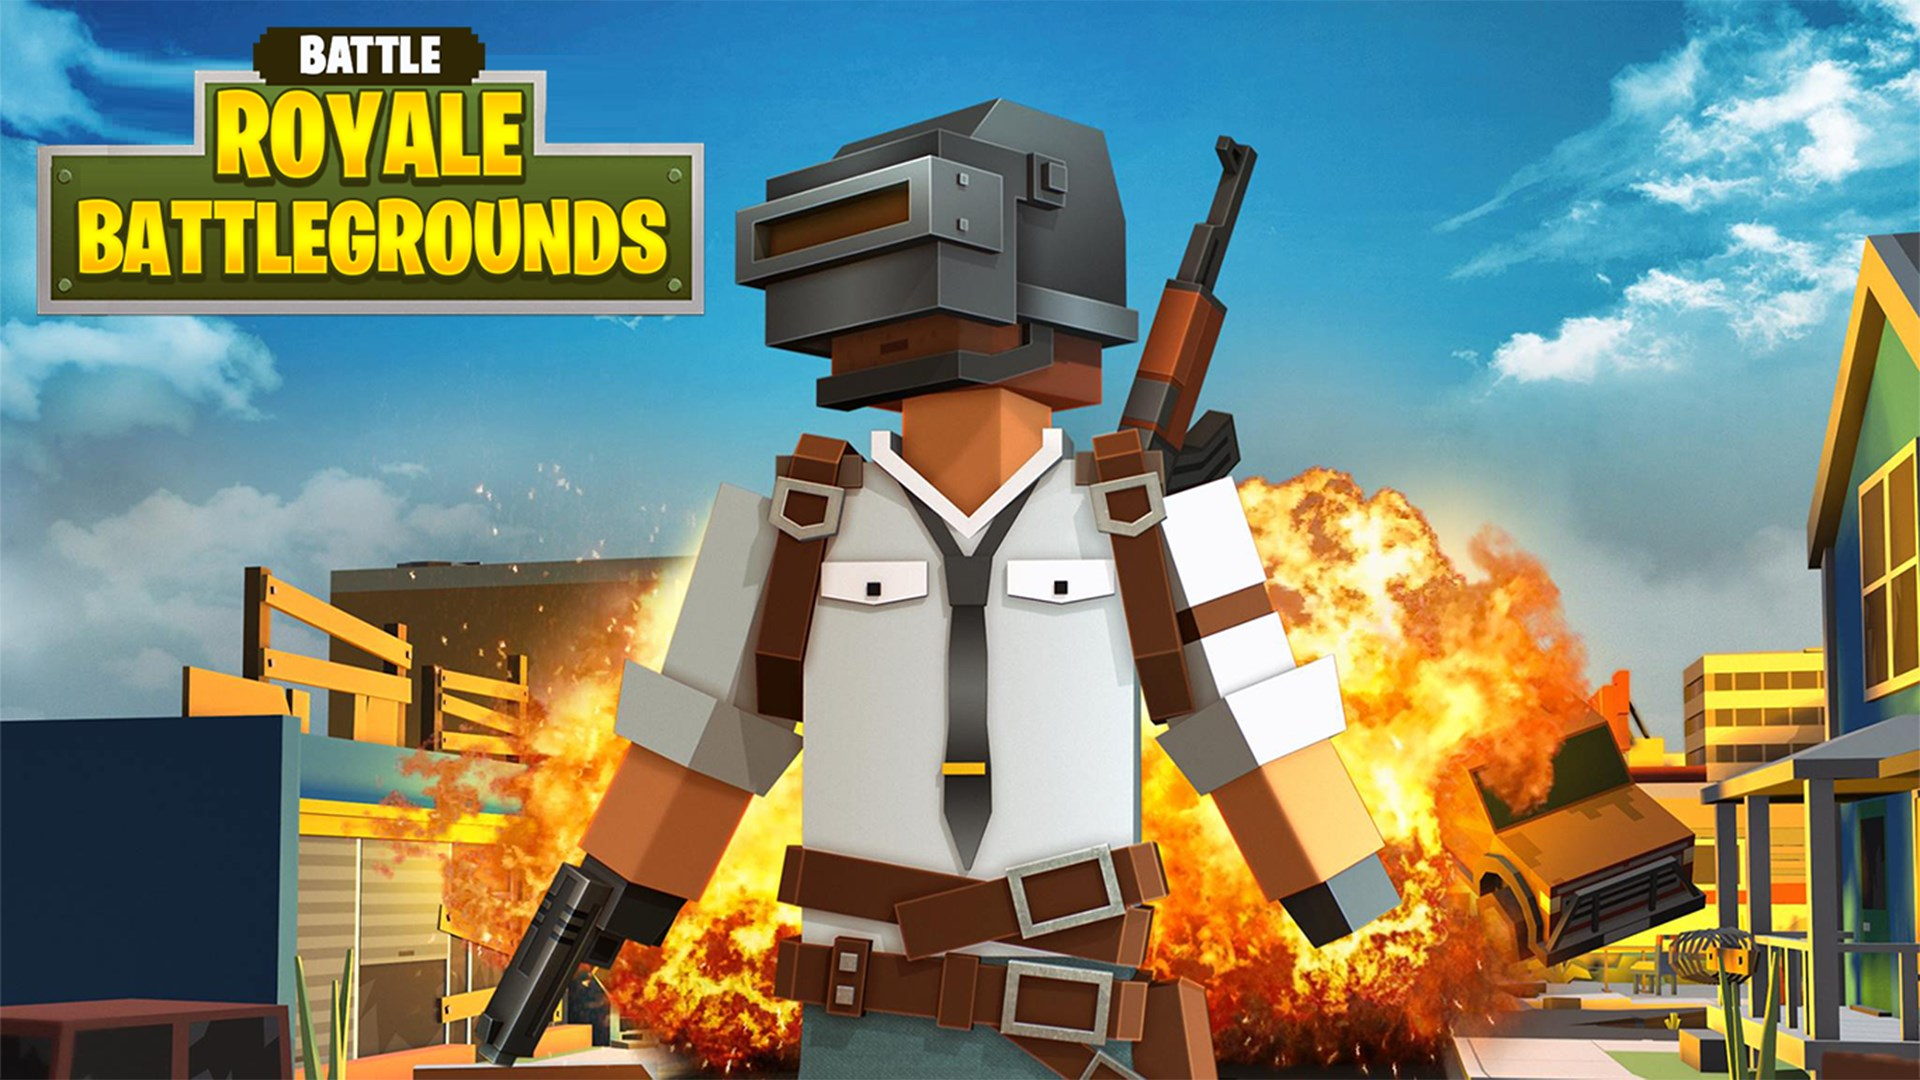 Get Battle Royale Battleground Craft 3D - Microsoft Store en-AU